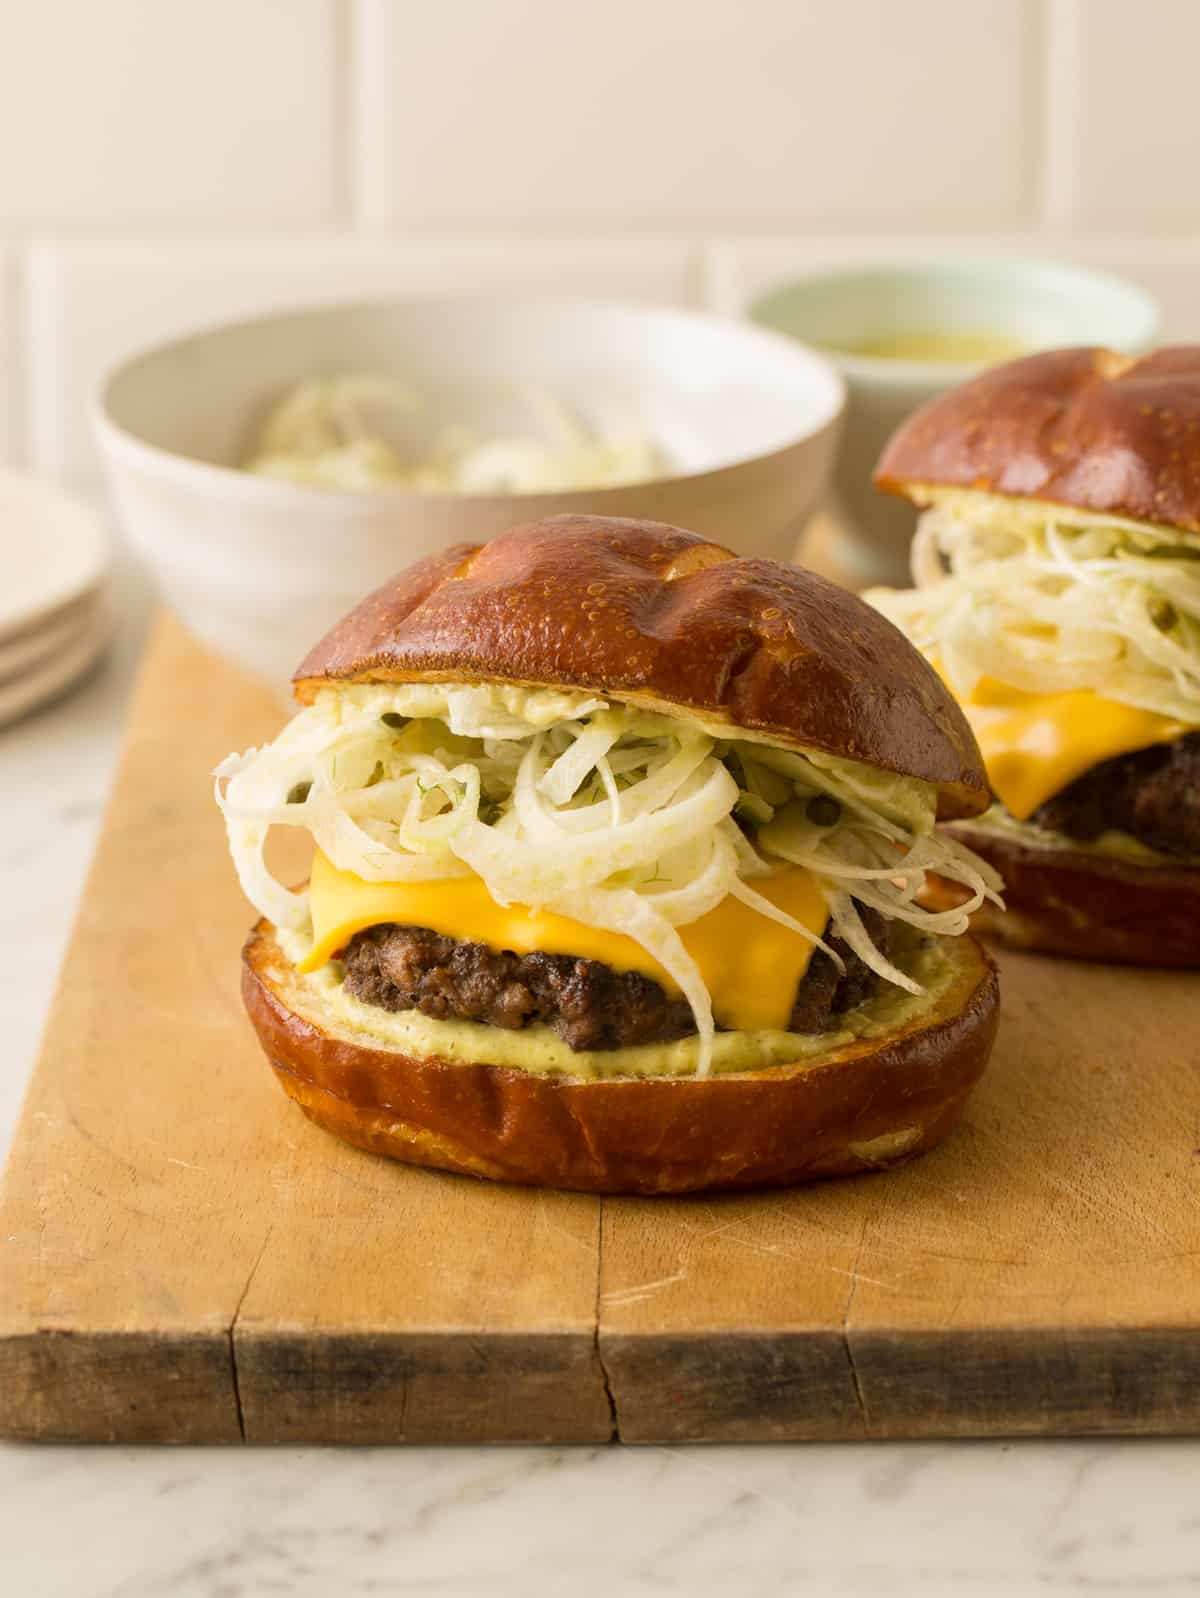 Fennel Slaw Topped Garlic and Peppercorn Burger